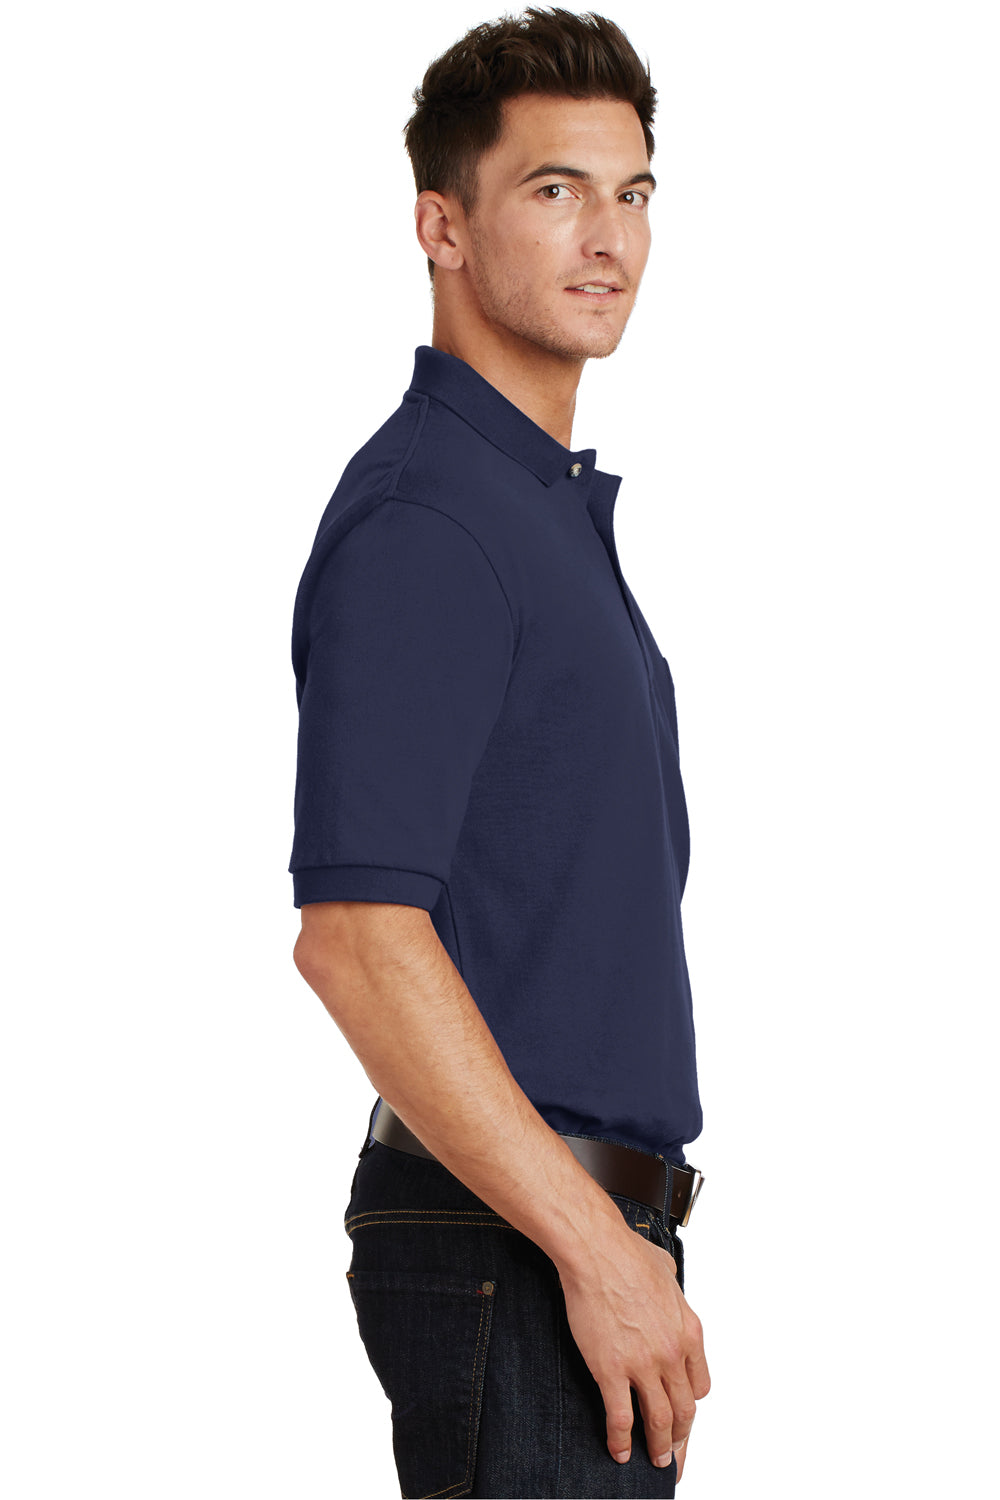 Port Authority K420P Mens Short Sleeve Polo Shirt w/ Pocket Navy Blue Side